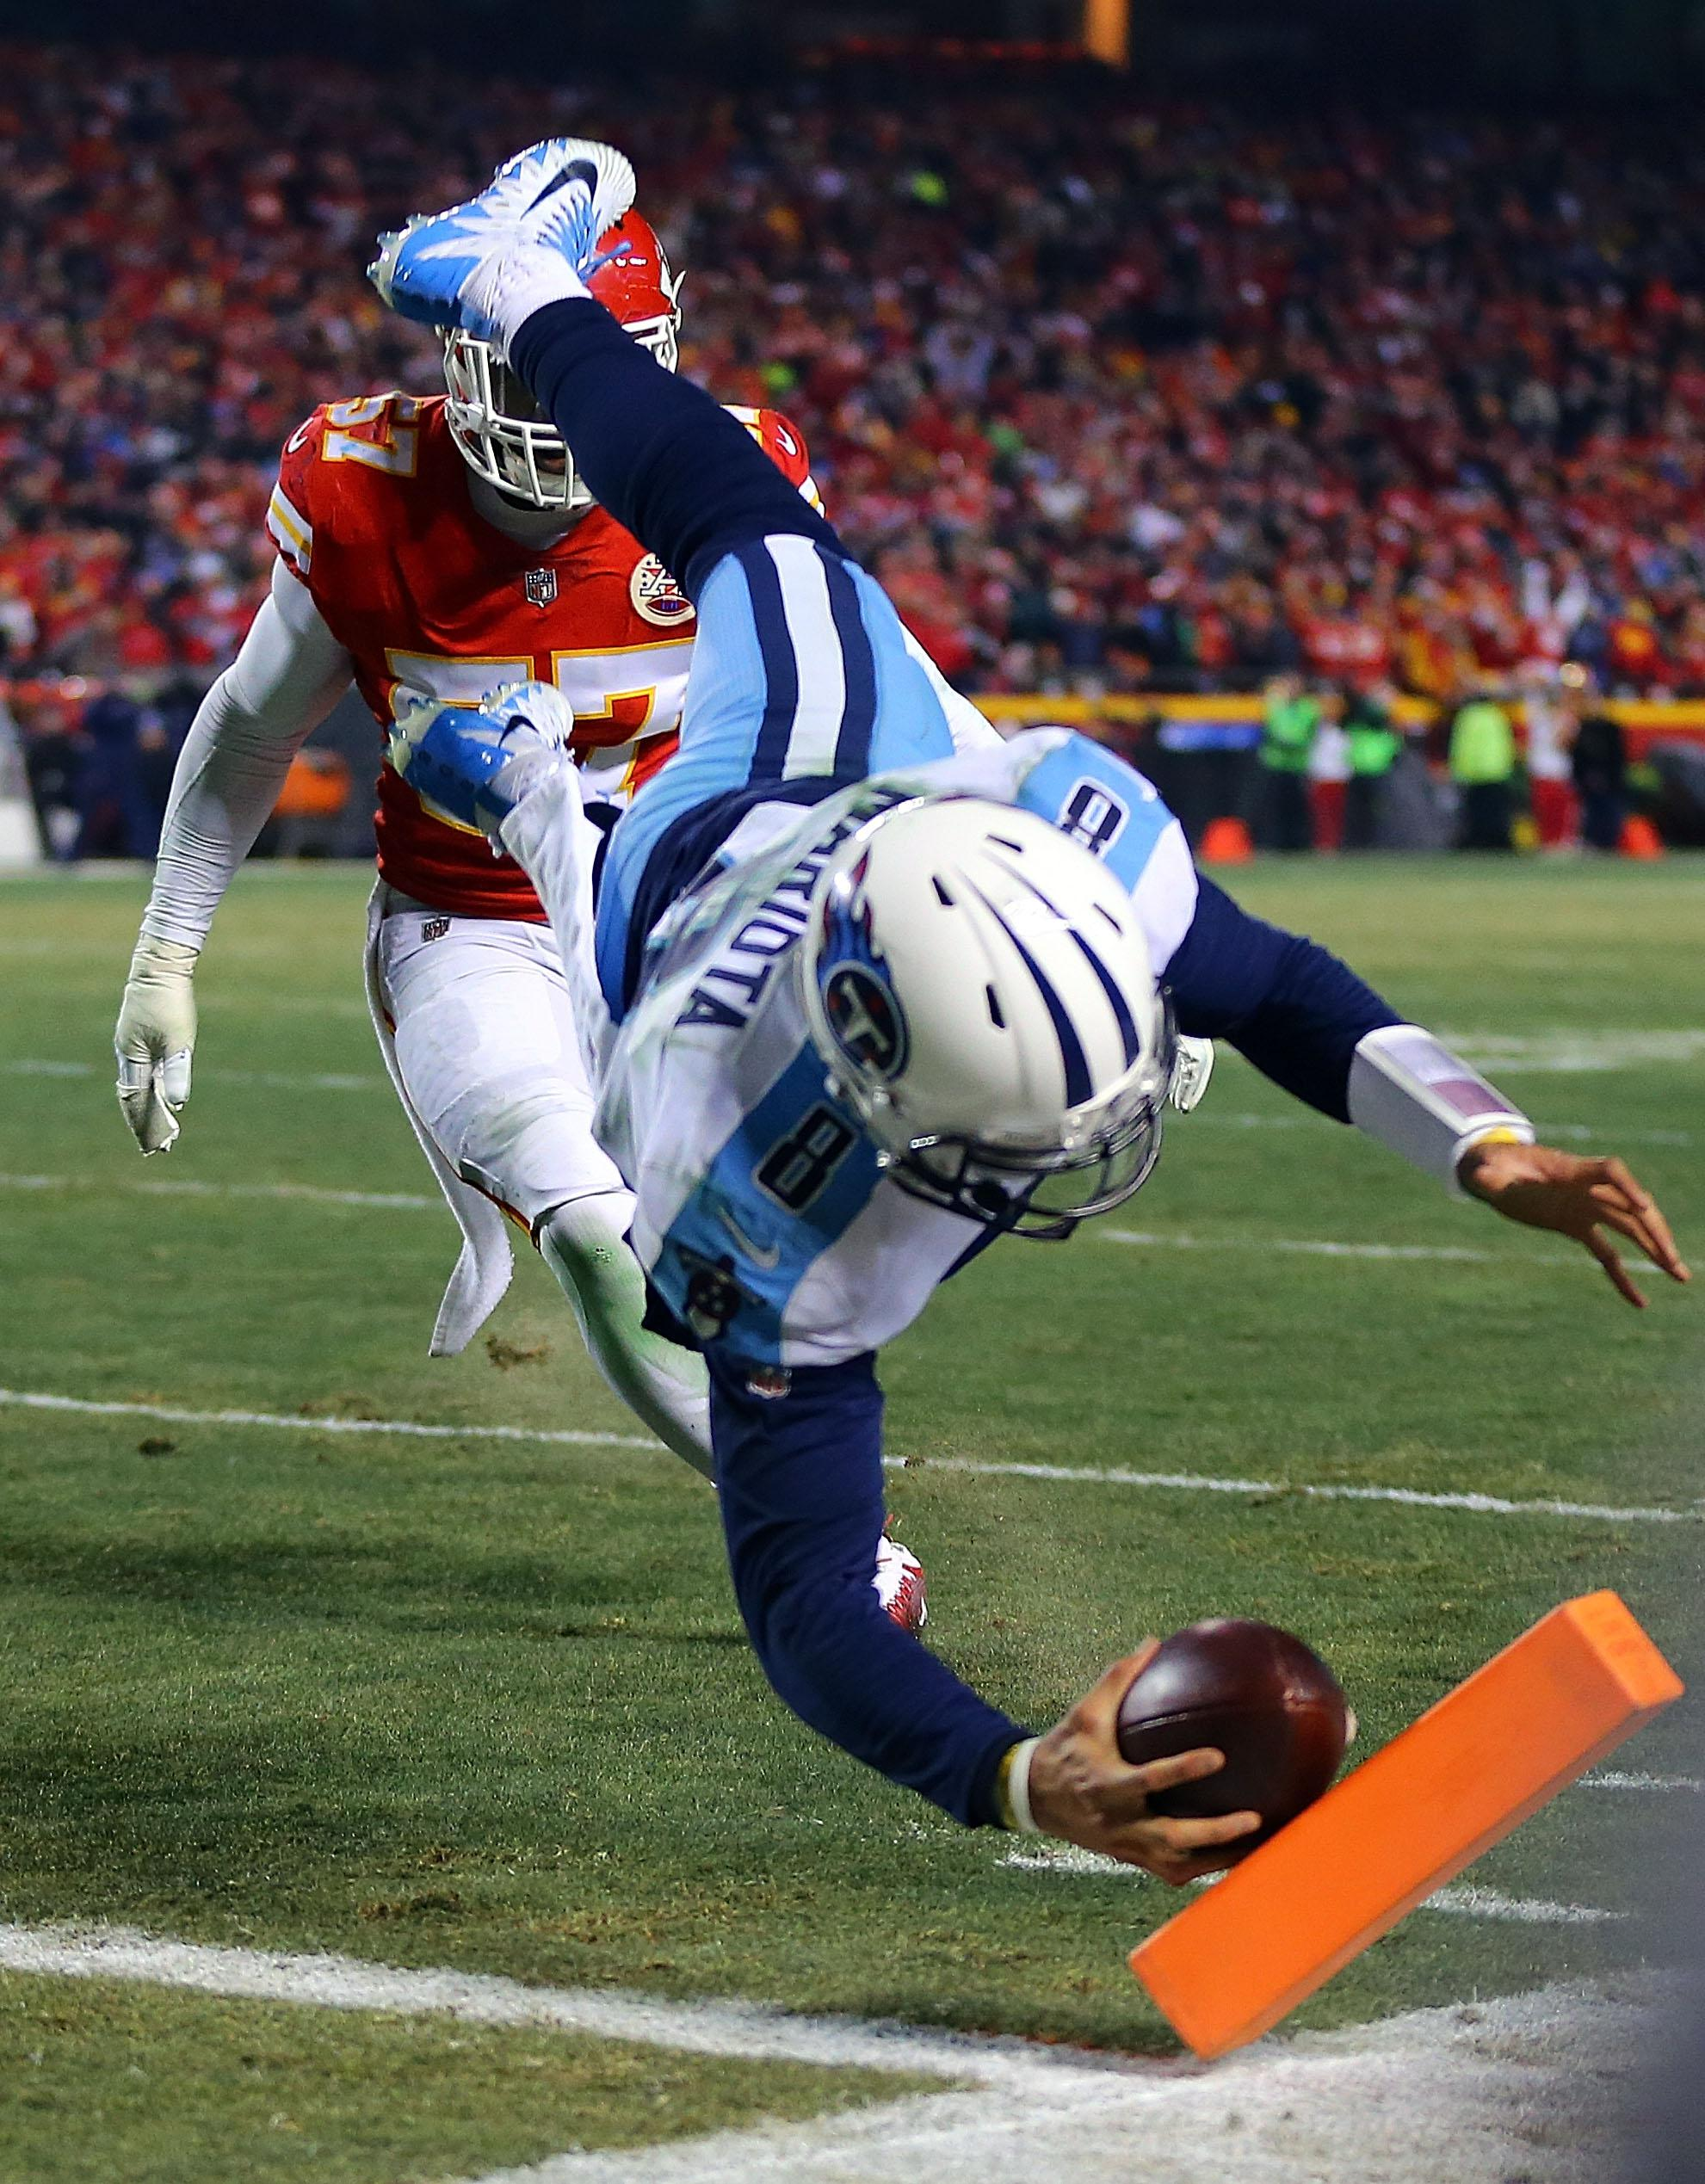 Marcus Mariota scored a sensational Tennessee Titans touchdown as he passed to himself